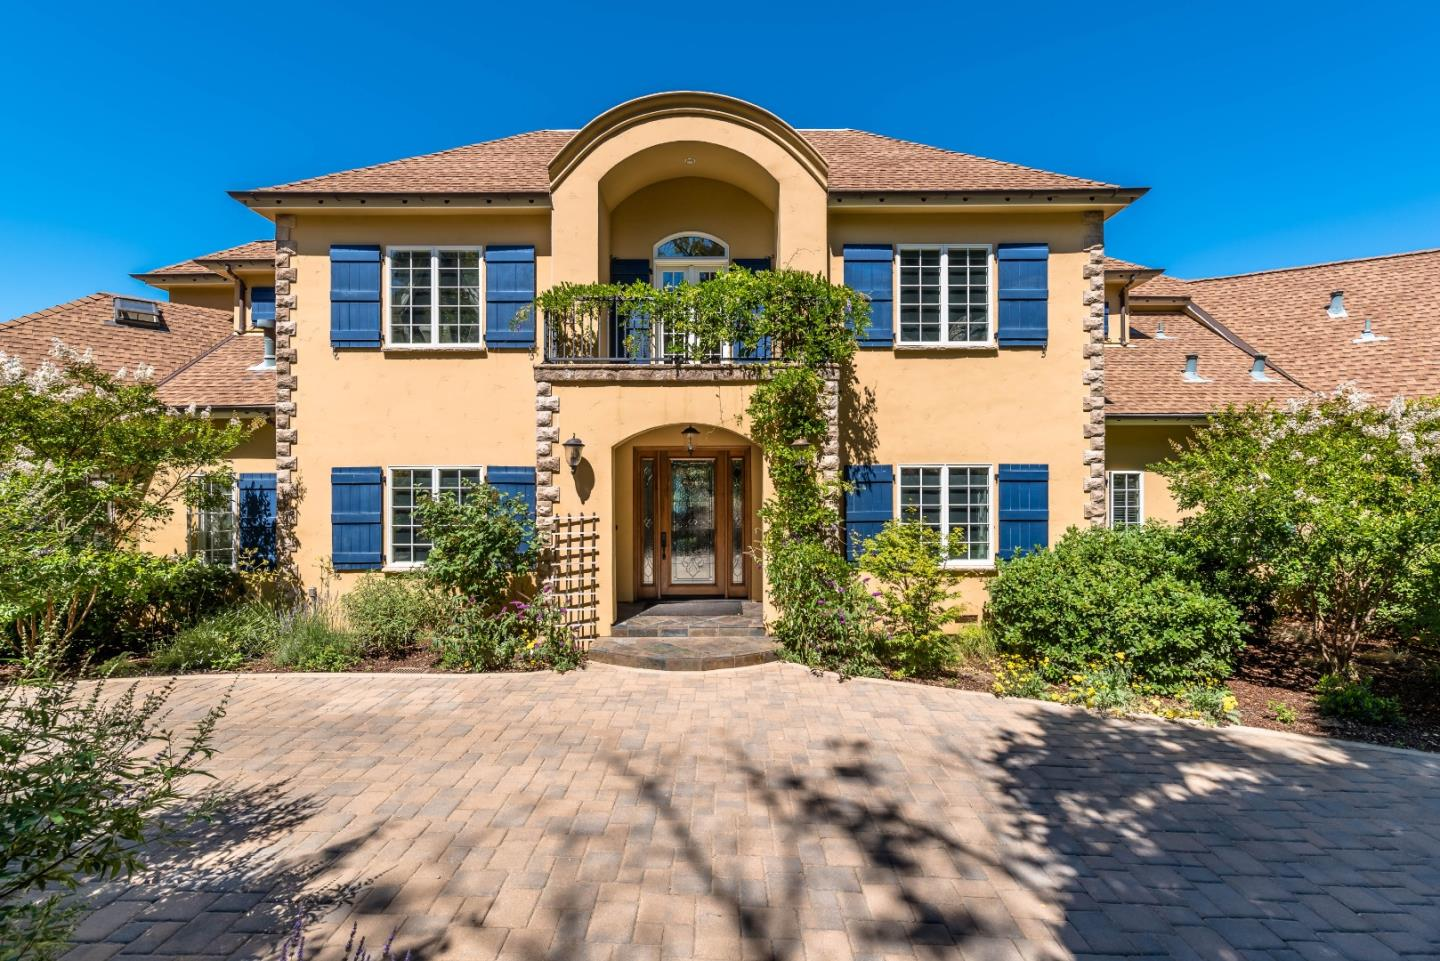 This Formal French Country Estate with the Finest European and Contemporary Finishes blended with Modern Home Technology is the definition of Sophistication and Elegance offering a Warm and Inviting Opportunity for Peaceful Outdoor Living among Nature. Enjoy this stunning 5 bed/ 6 bath ~5,600sqft Home and Grounds,~1,317sqft 1 bed /2 bath Guest House and ~9,000sqft Barn w/ workout room, sport court, stalls, and unlimited storage. Explore nature among the gorgeous ~21 acre parcel. Entertaining is a dream come true w/ Abundant Professional Grade Amenities Designed for the most Discerning Epicurean Convenience in the Indoor and Outdoor Kitchens and Dining as well as the Bar/Billiards/HomeTheater areas.  Colorful California Sunsets illuminating over multi ridge vistas of the majestic Mountains w/ peeks of the Monterey Bay from nearly every room and gorgeous outdoor living/entertaining spaces; patios, terraces + jaw dropping veranda, dual waterfall pool, hot tub, outdoor kitchen, and dining.